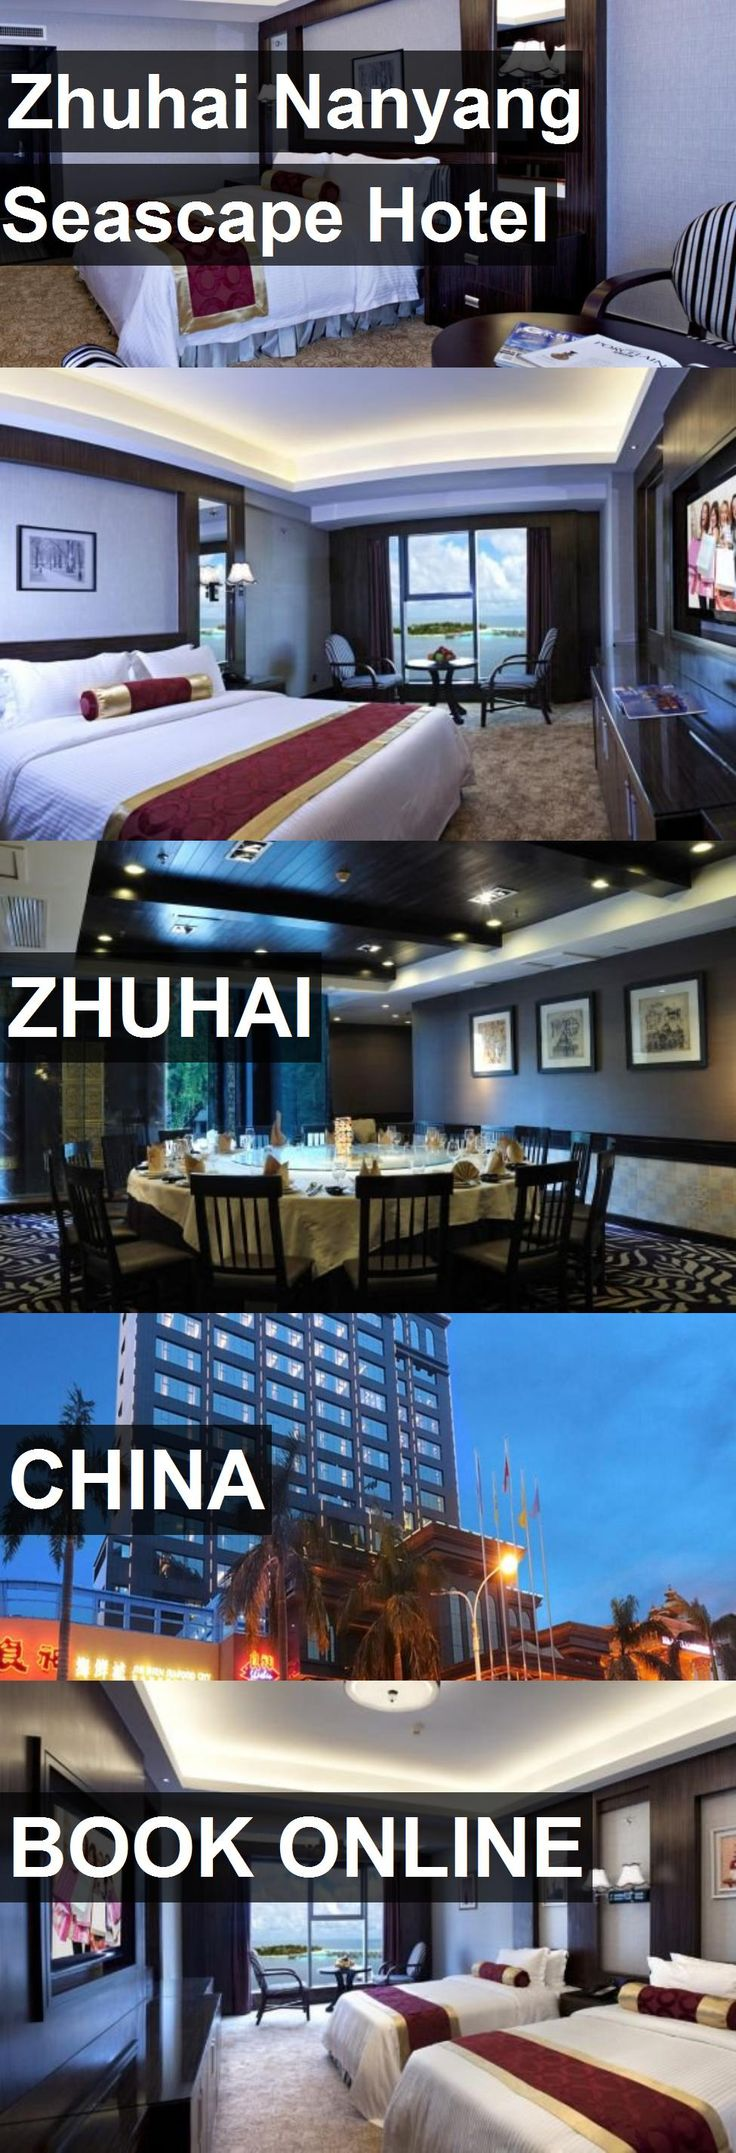 Hotel Zhuhai Nanyang Seascape Hotel in Zhuhai, China. For more information, photos, reviews and best prices please follow the link. #China #Zhuhai #ZhuhaiNanyangSeascapeHotel #hotel #travel #vacation